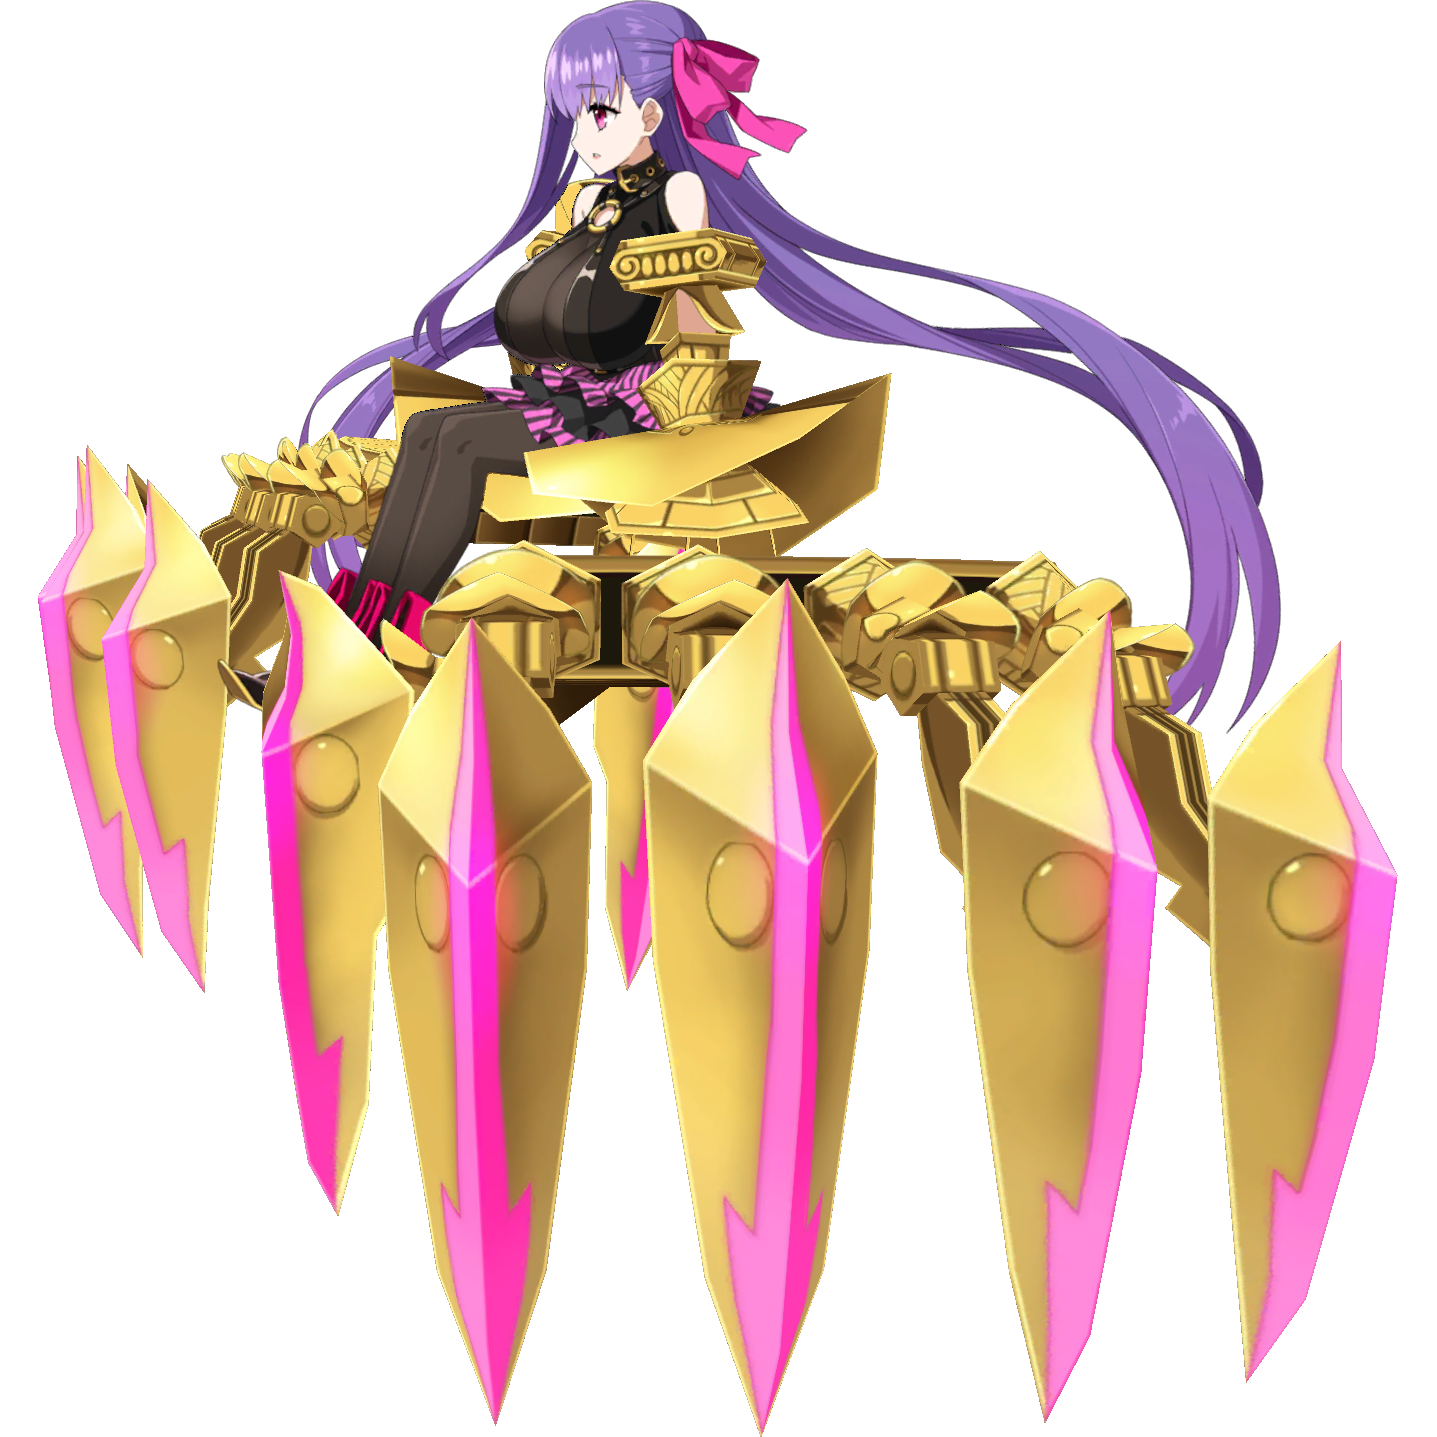 Passionlip Fate Grand Order Wikia Fandom Unlocks after 3rd ascension increases own attack for 3 turns. passionlip fate grand order wikia